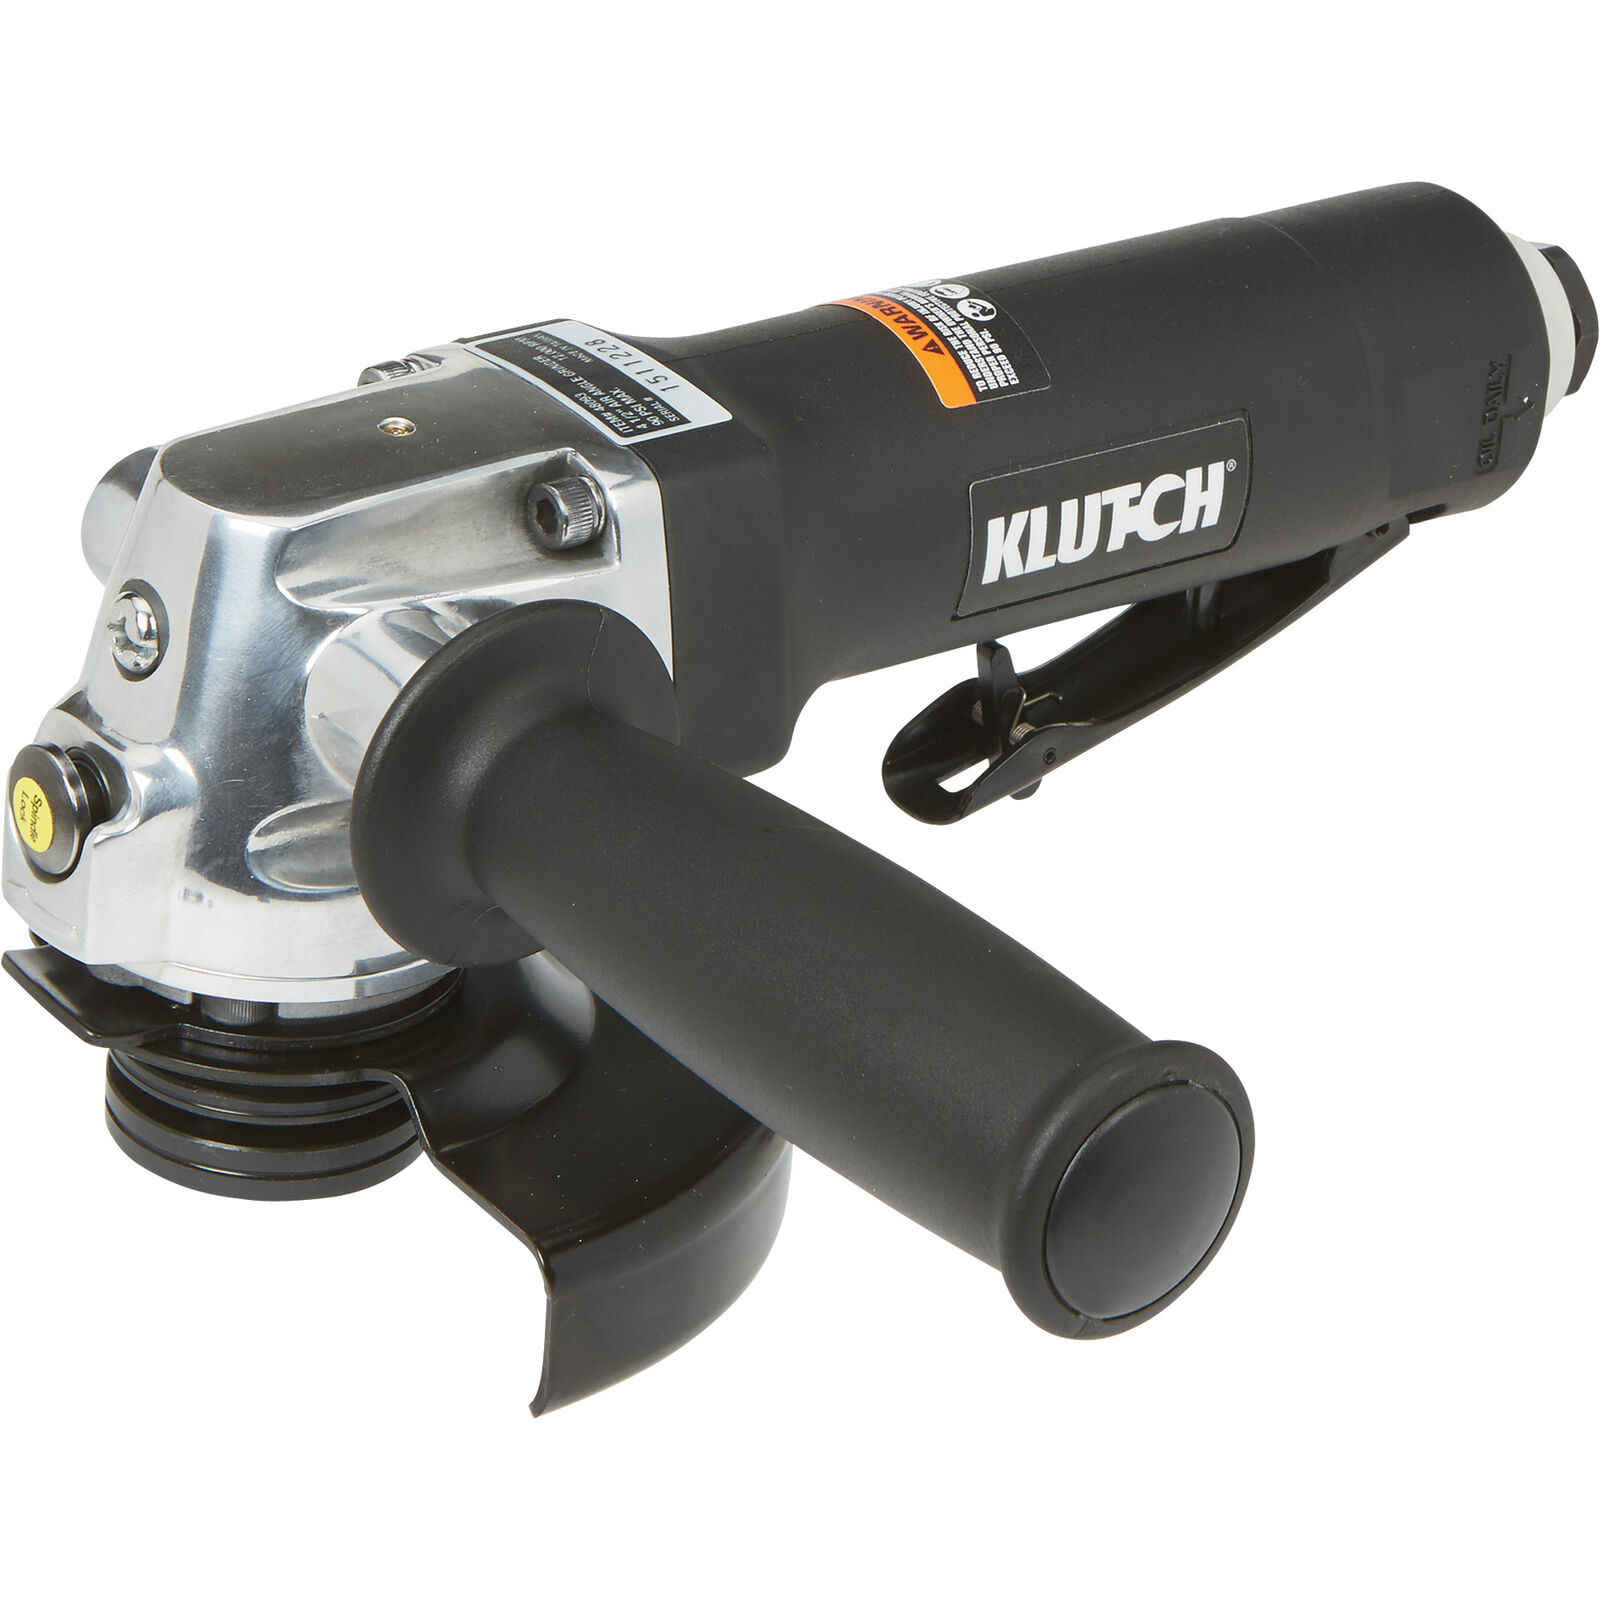 Klutch 4 1/2in. Air Angle Grinder - 12,000 RPM, 4 CFM. Buy it now for 124.99